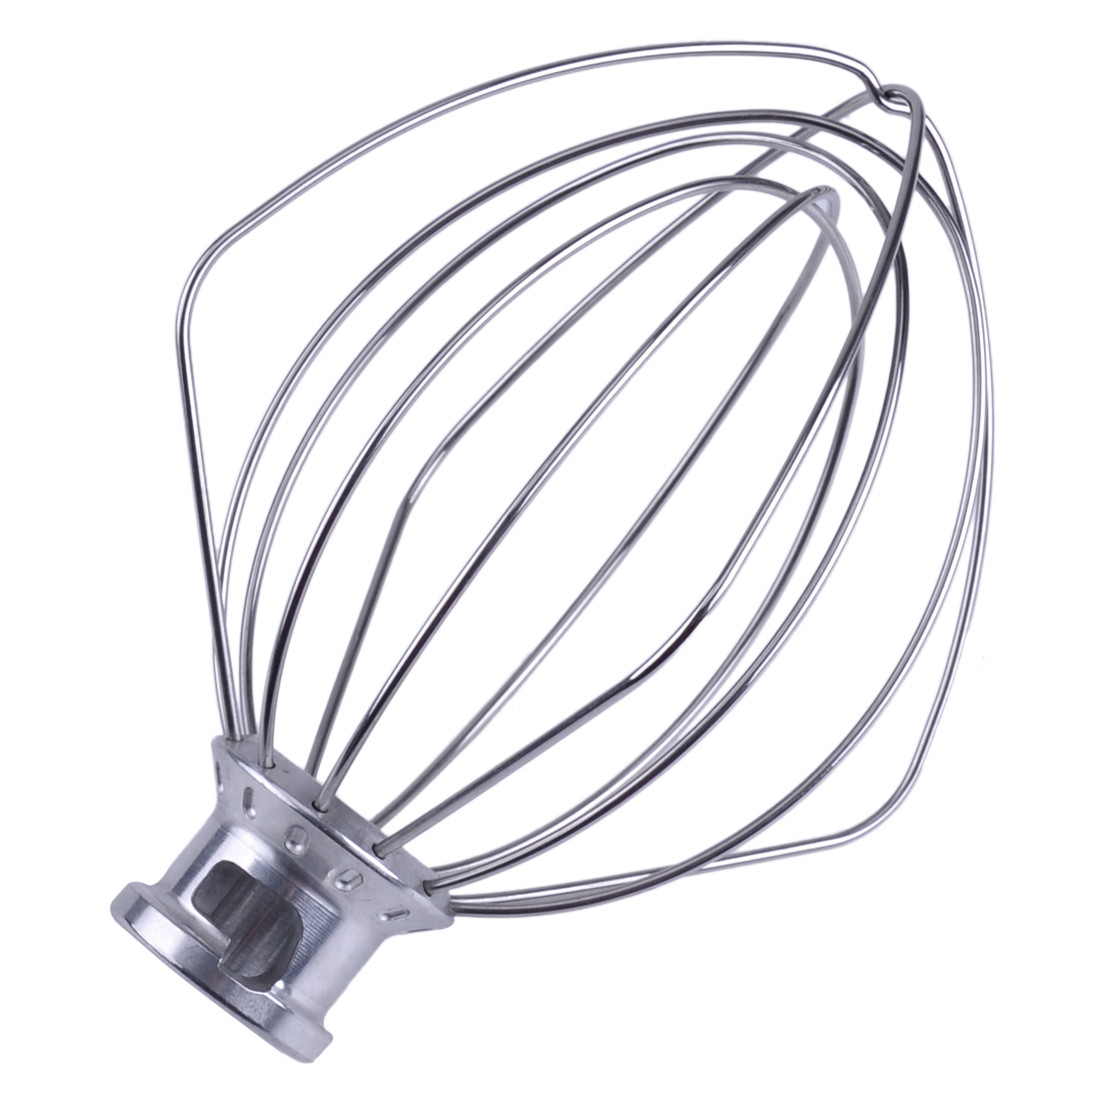 Wire Whip Beater Mixer Attachment Whisk Fits Kitchen Aid